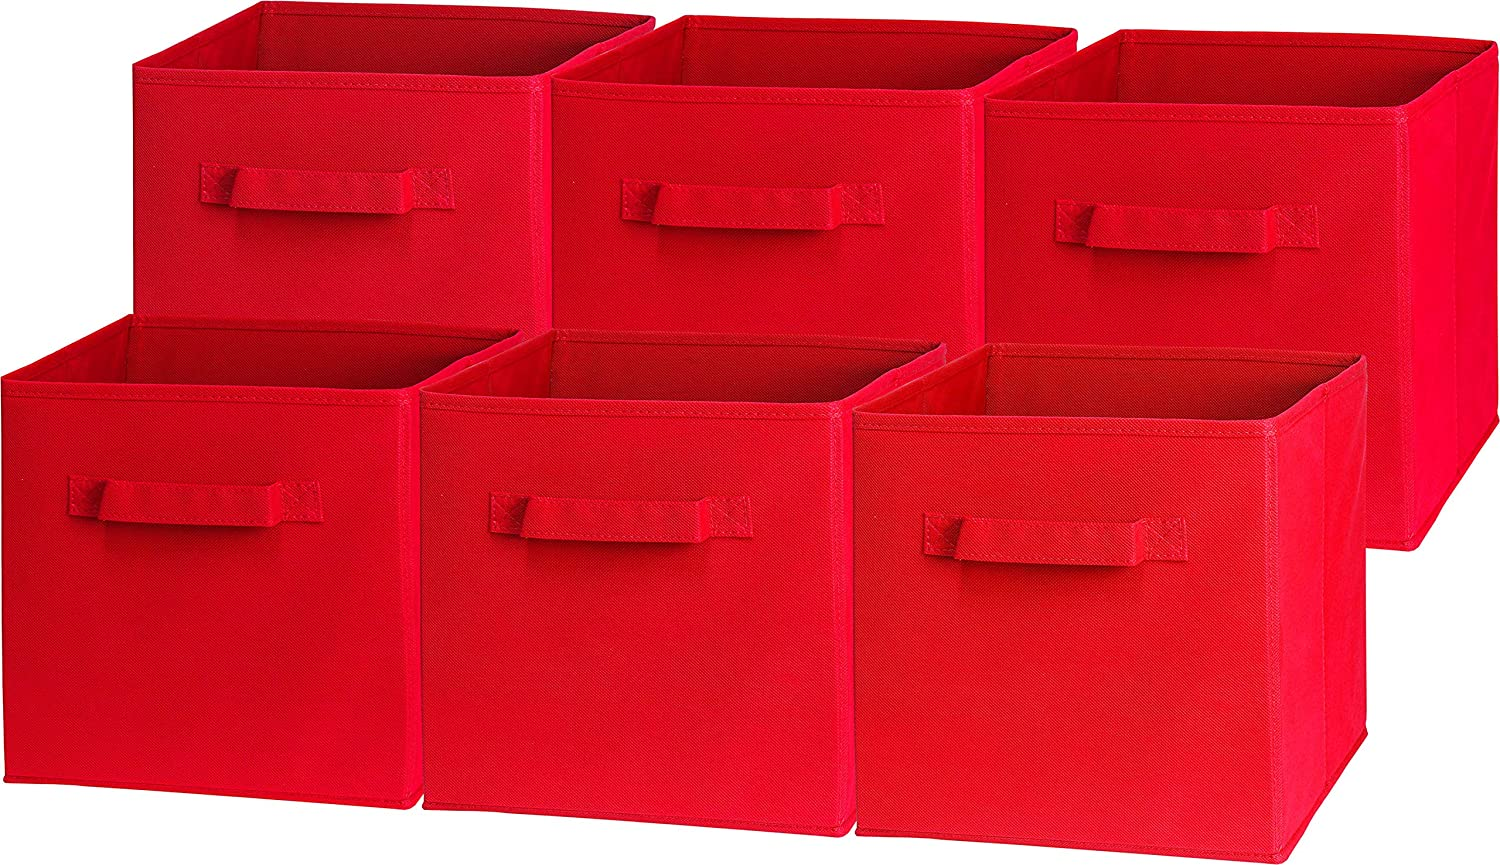 6 Pack - SimpleHouseware Foldable Cube Storage Bin, Red